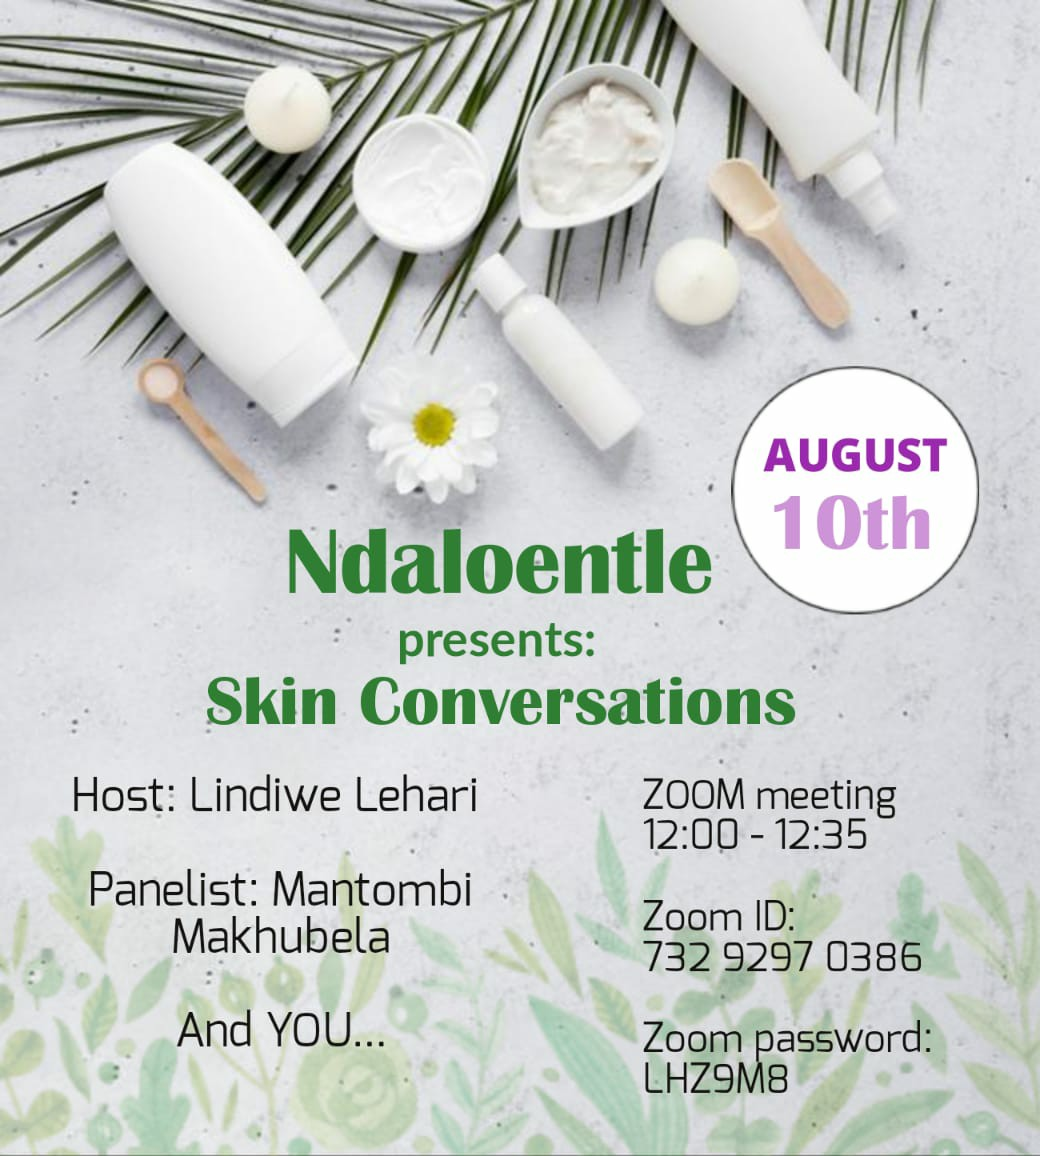 We are cordially invited bahlali. Skin conversations on Monday 10th August 2020 at 12pm. Invest in your skin, its going to REPRESENT you for a very long time. #OwnYourSkin #SkinConversations twitter.com/Mkhulu_Sivivan…